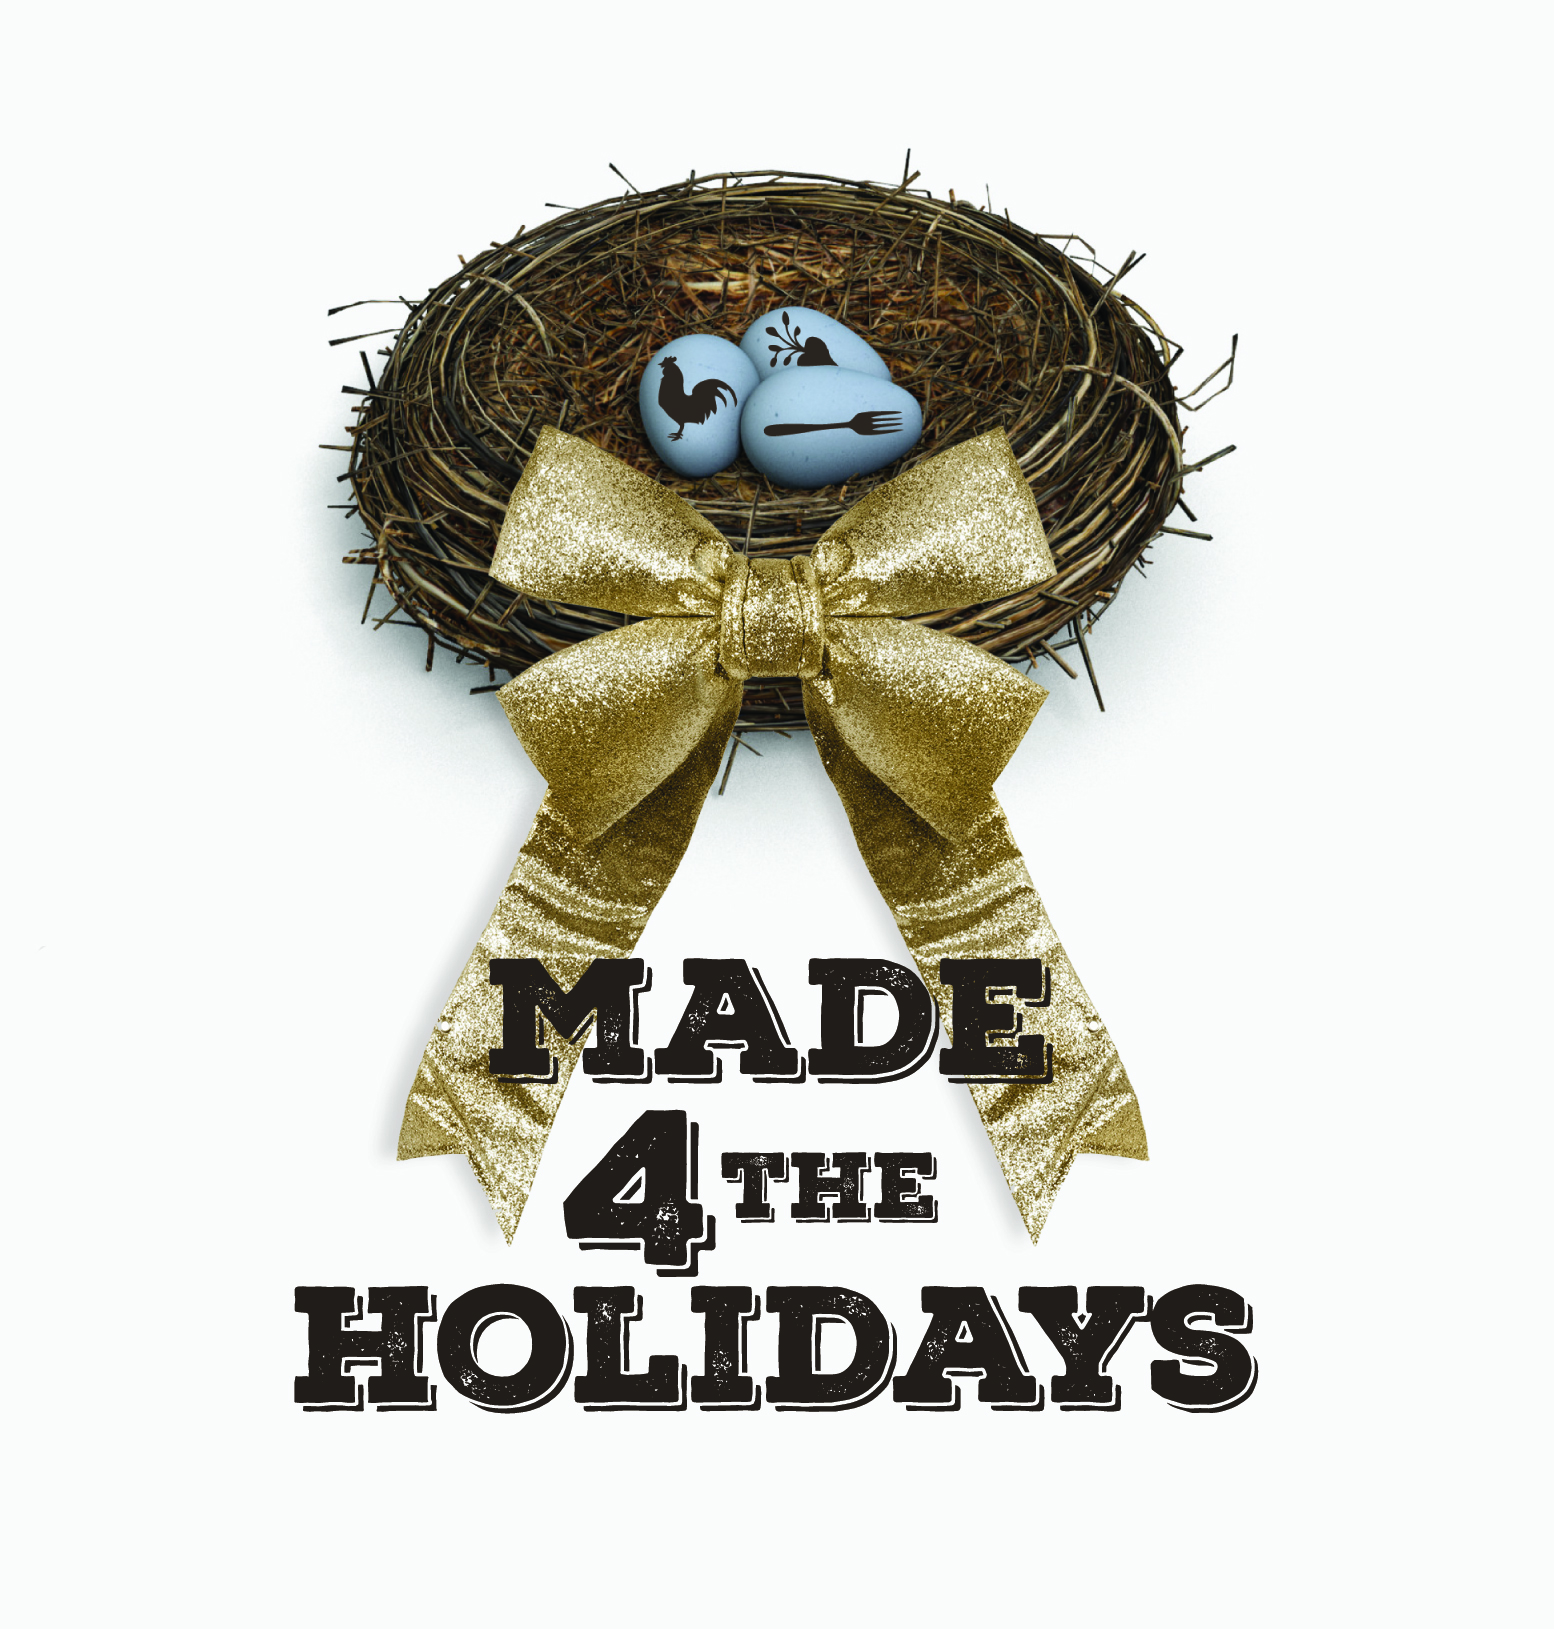 MADE 4 the Holidays is this Sunday, December 4th